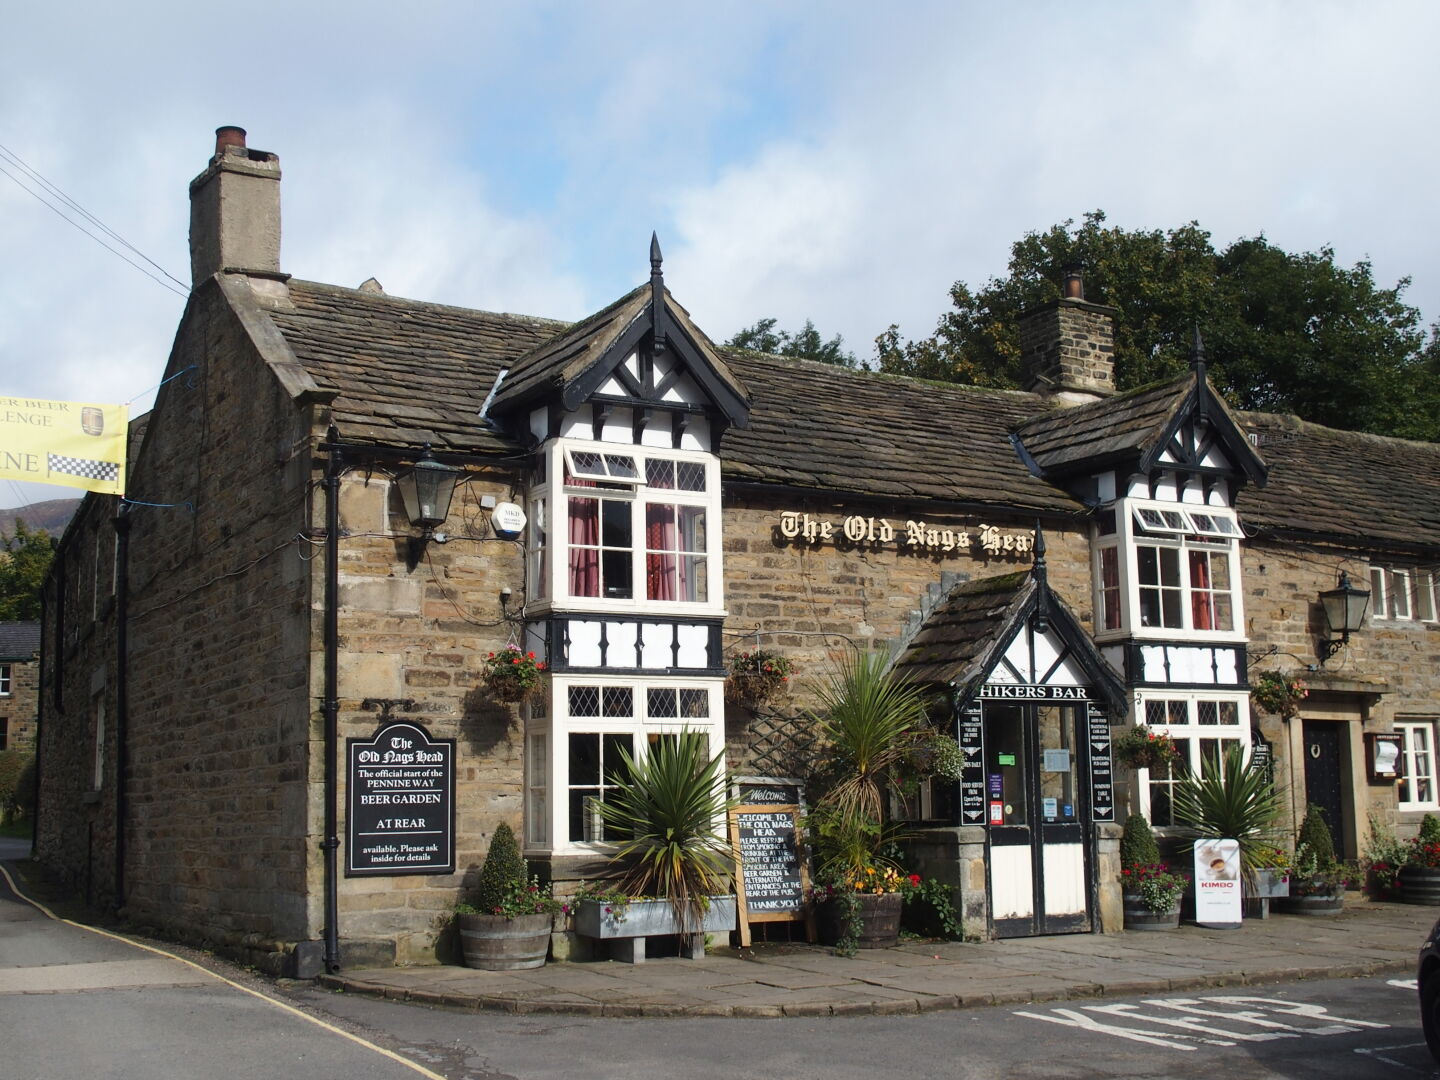 The Old Nags Head, Edale, Derbyshire, dates back to 1577.